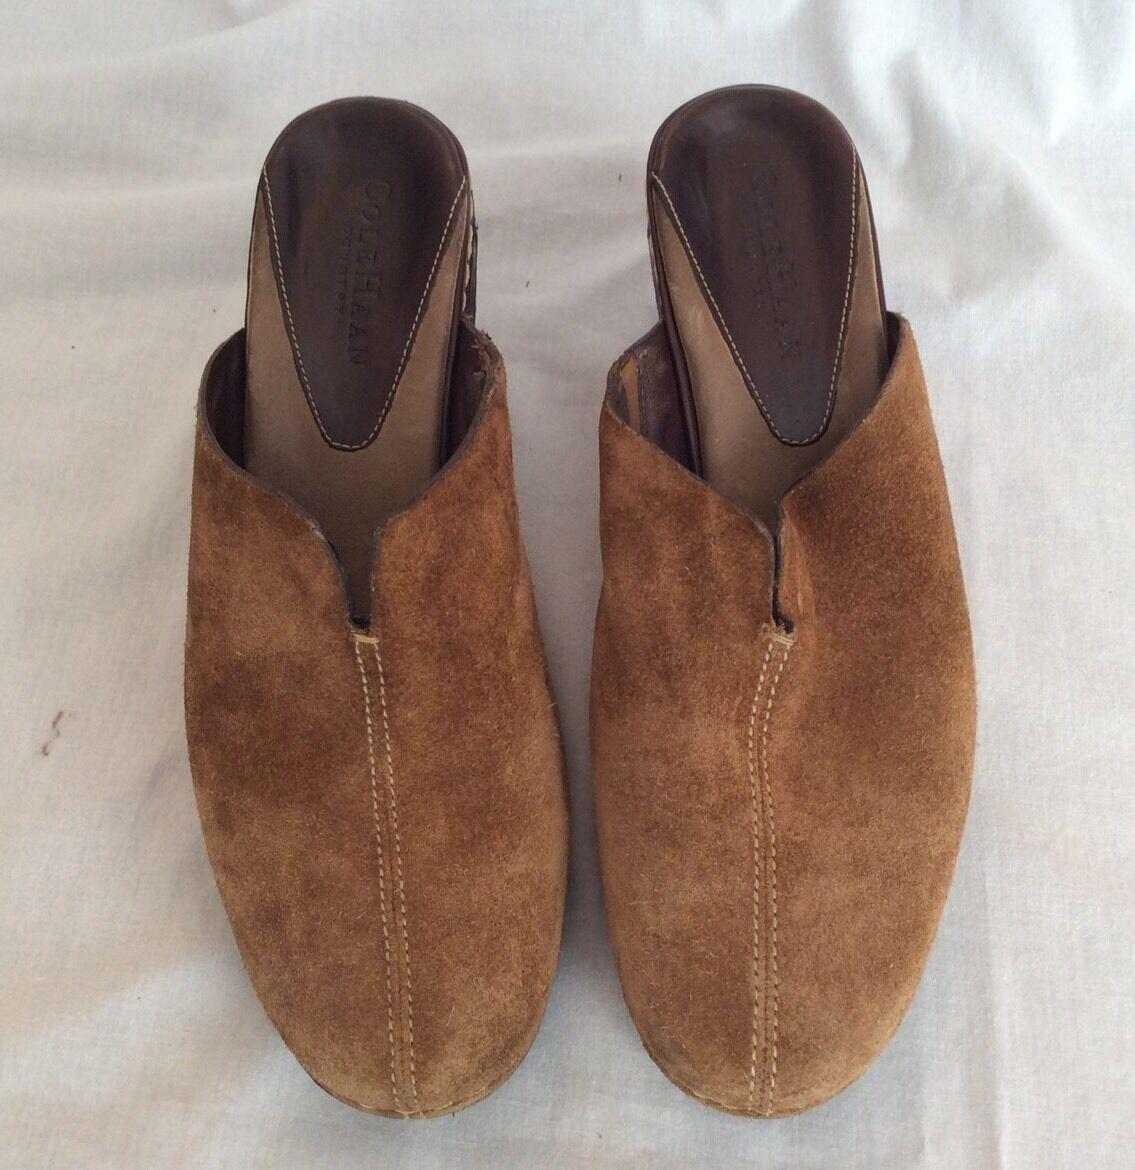 COLE HAAN Womens Country Suede Brown Leather Heel Clogs Mules Slip On Size 6.5B